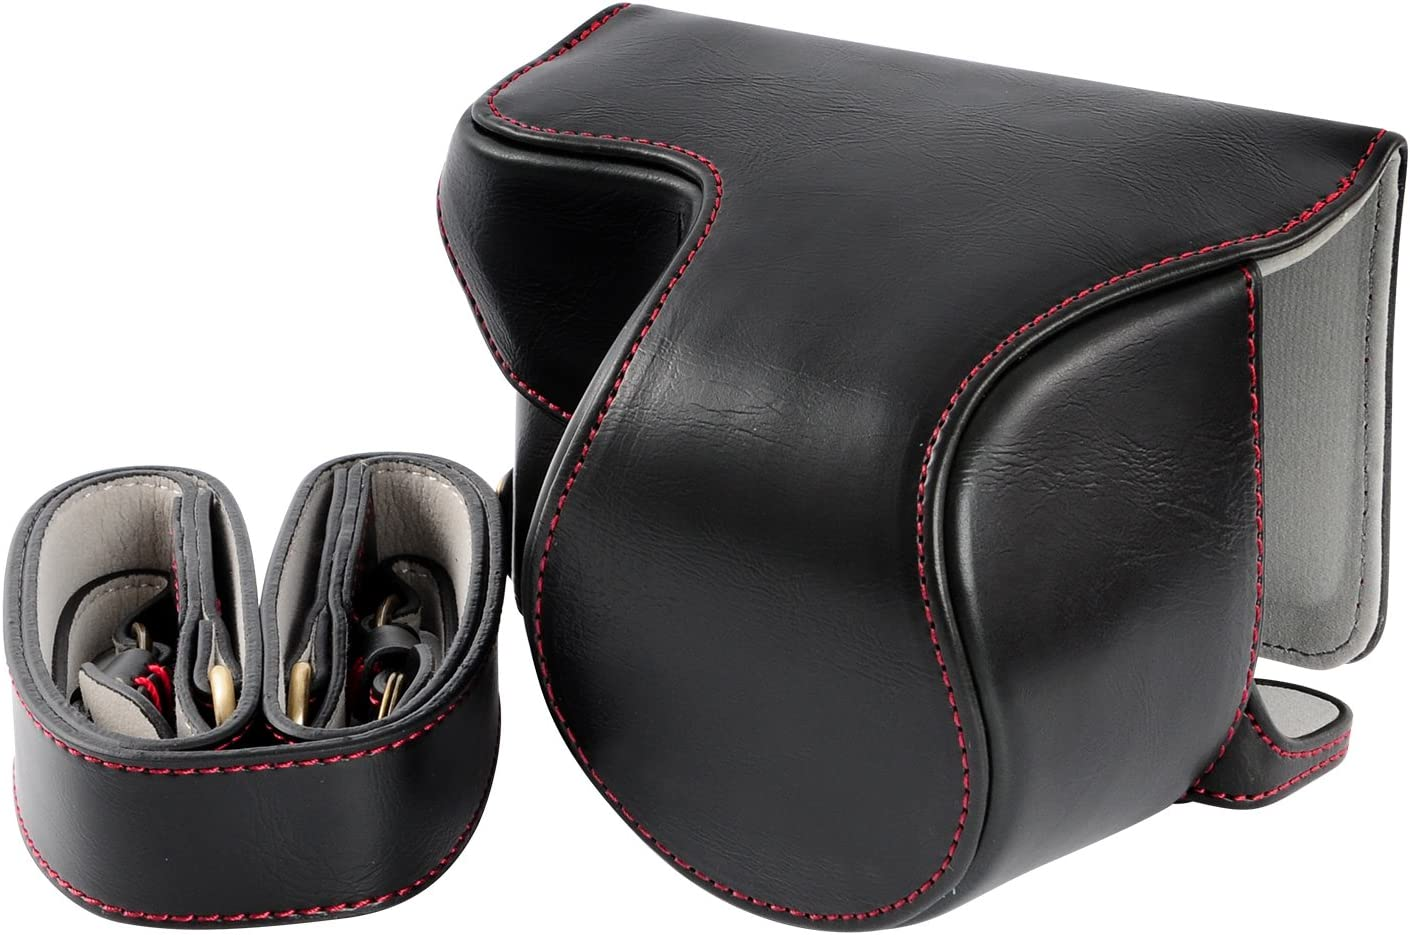 Hwota Handmate Premium PU Full Body Leather Camera Case Bag For Sony Alpha A6000 A6300 Fit 16-50mm Lens Neck Strap Black